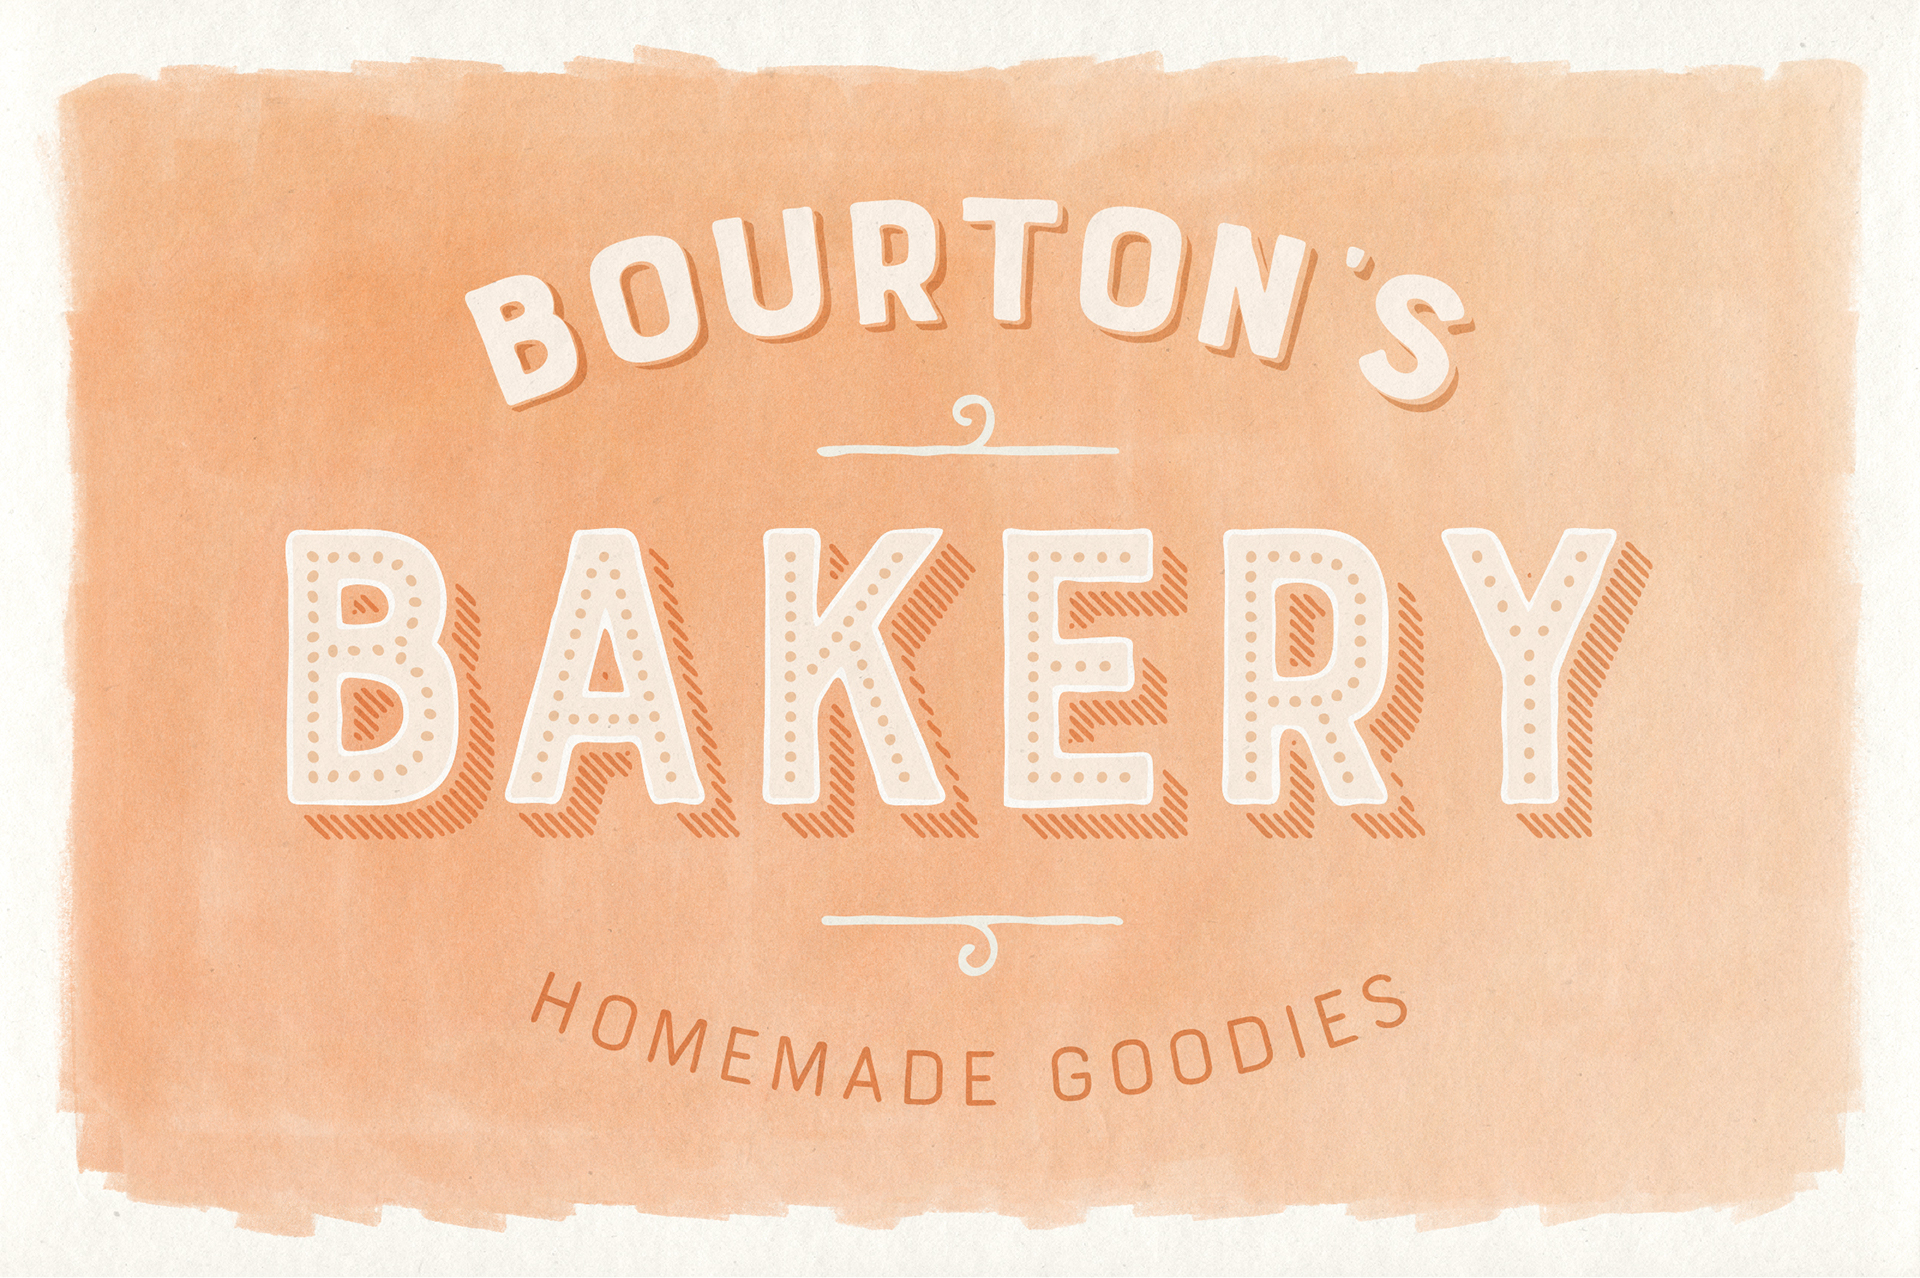 Bourton Hand Type Collection on Behance